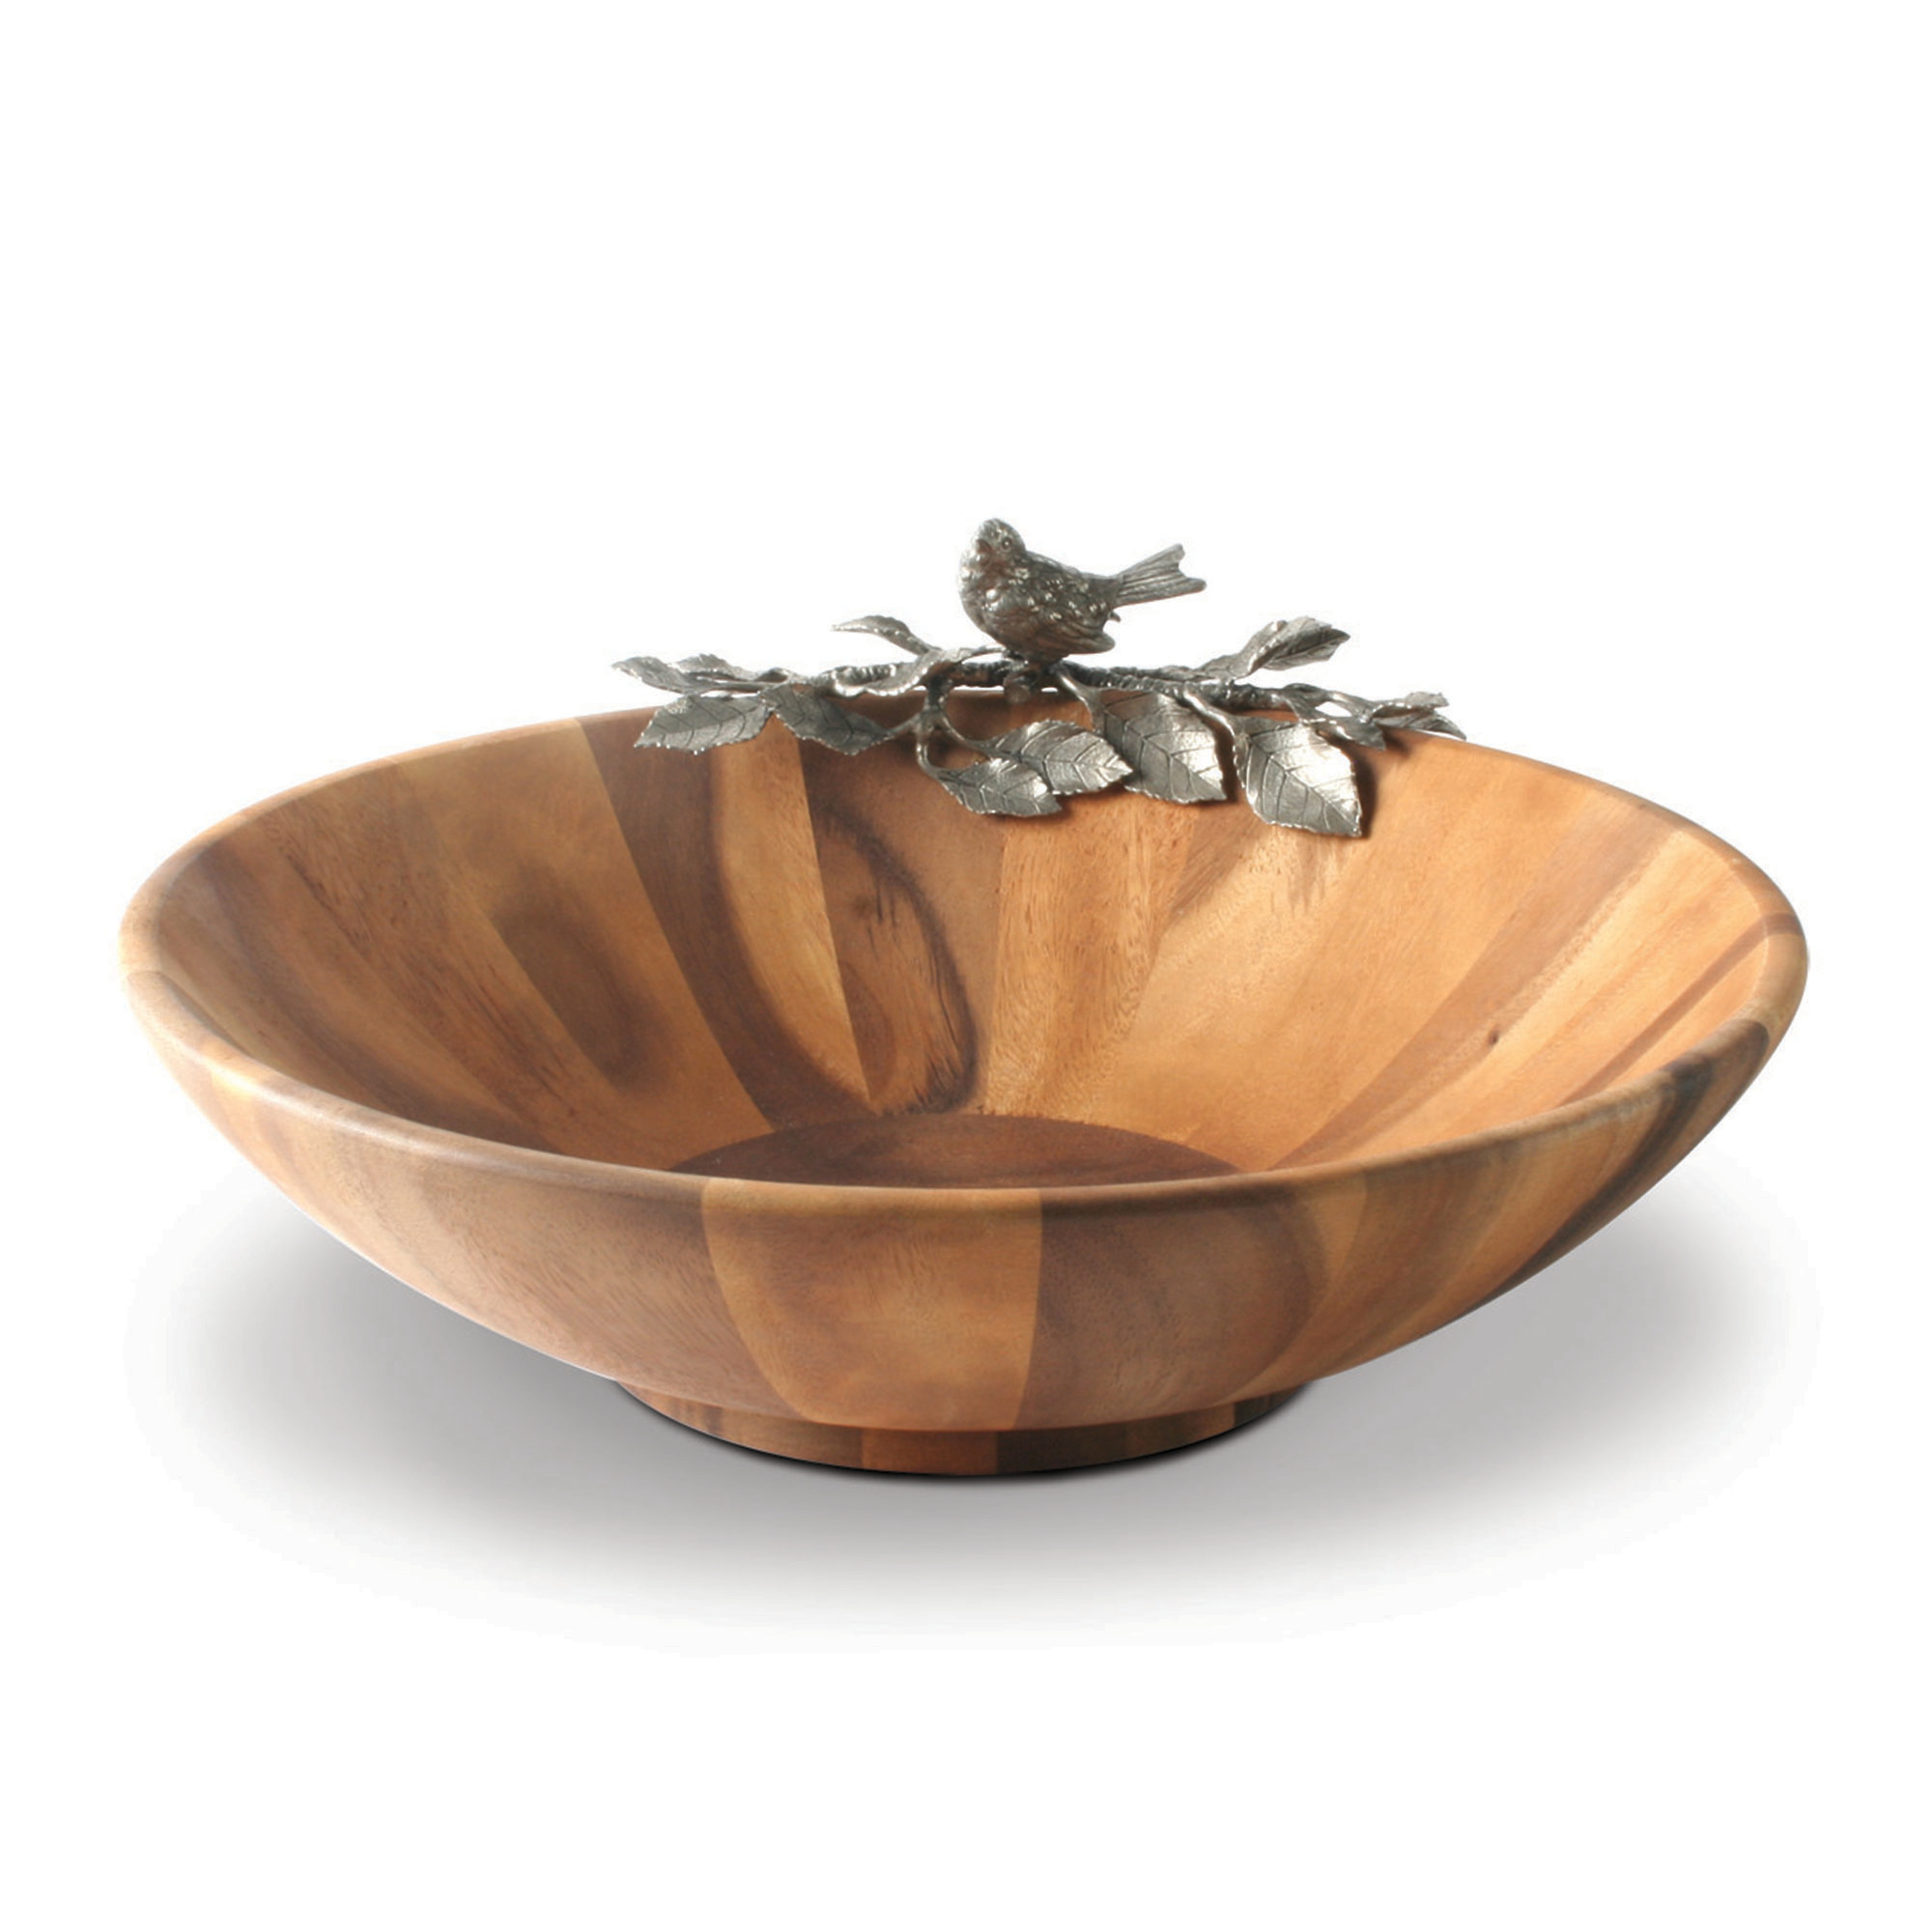 Vagabond House Song Bird Salad Bowl Large